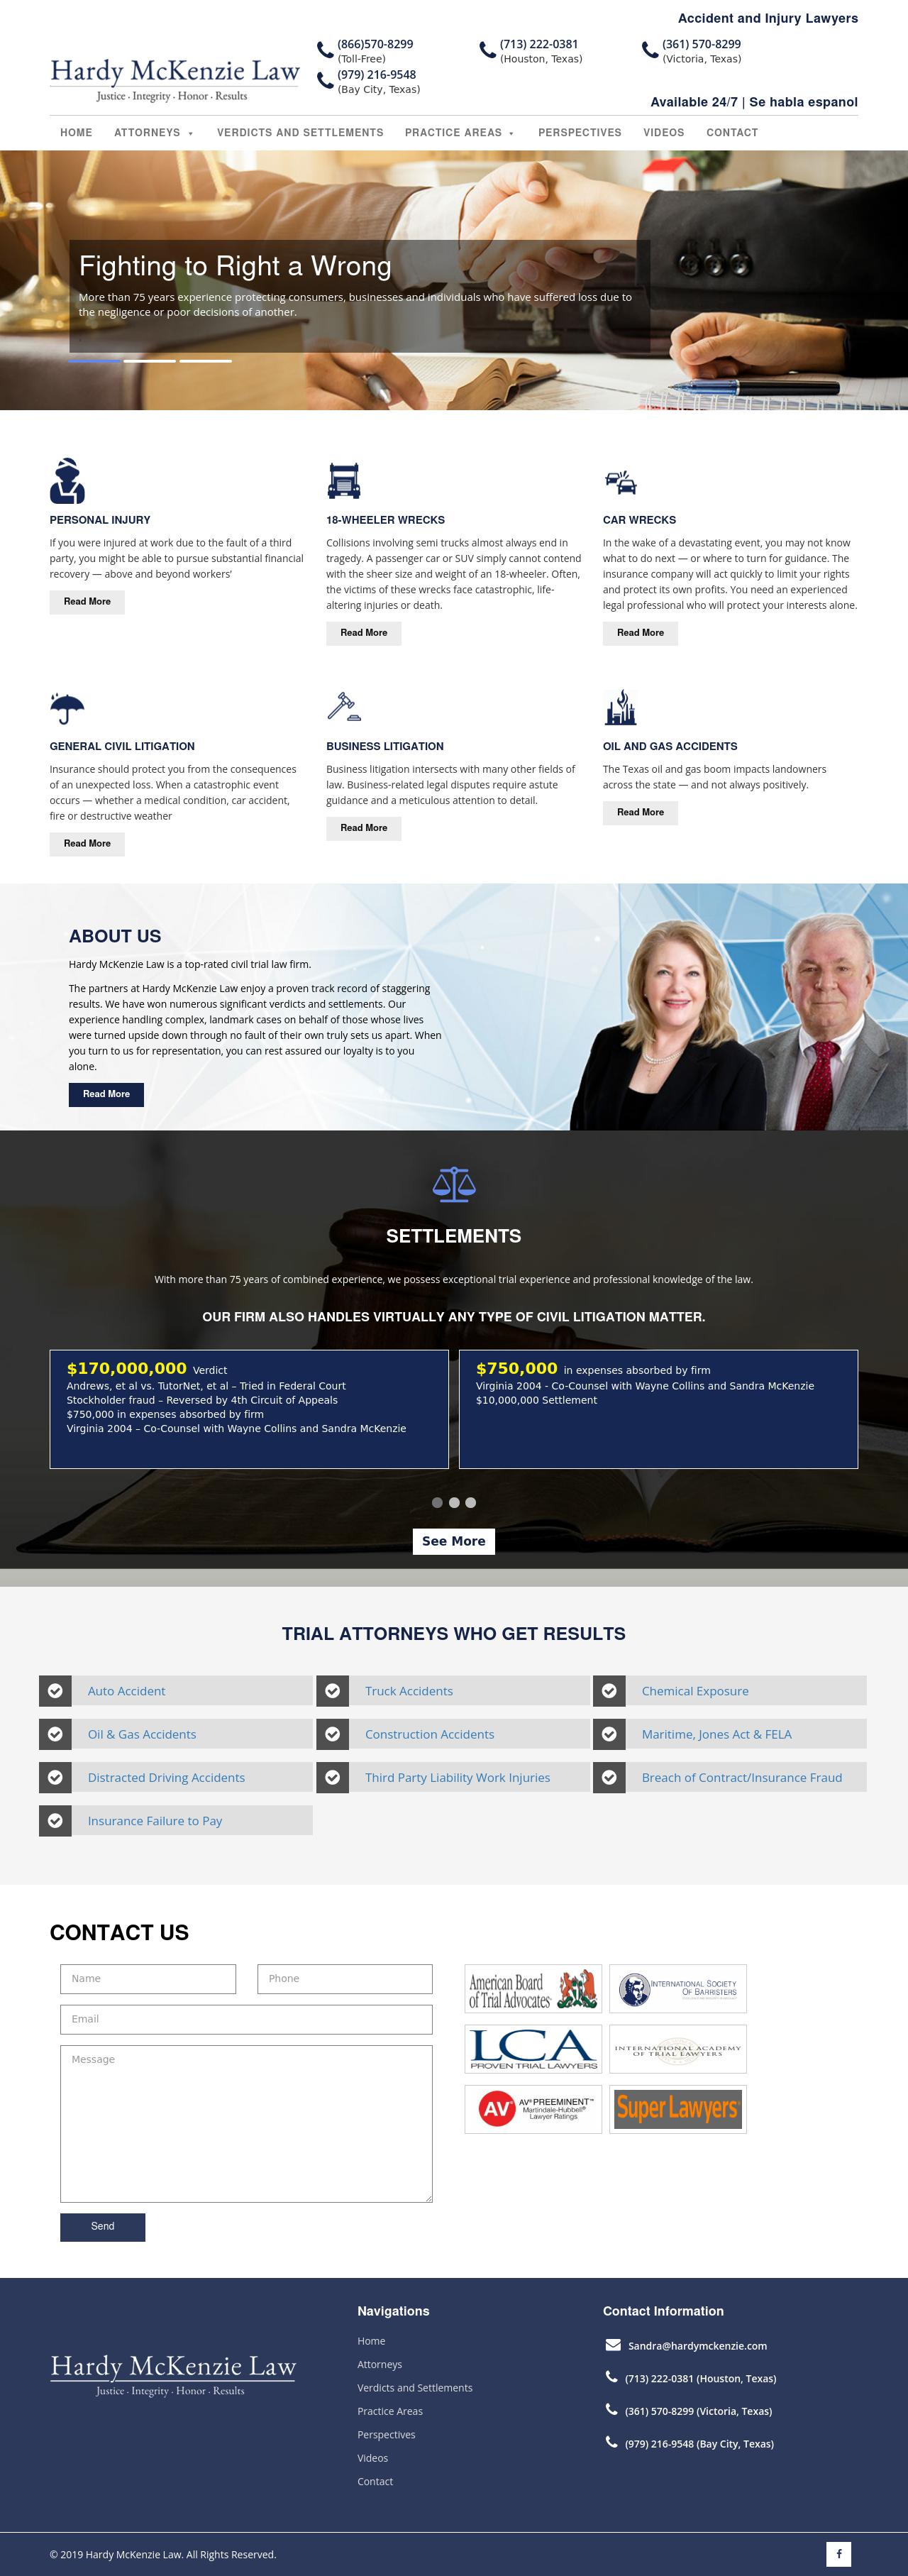 Hardy McKenzie Law - Houston TX Lawyers